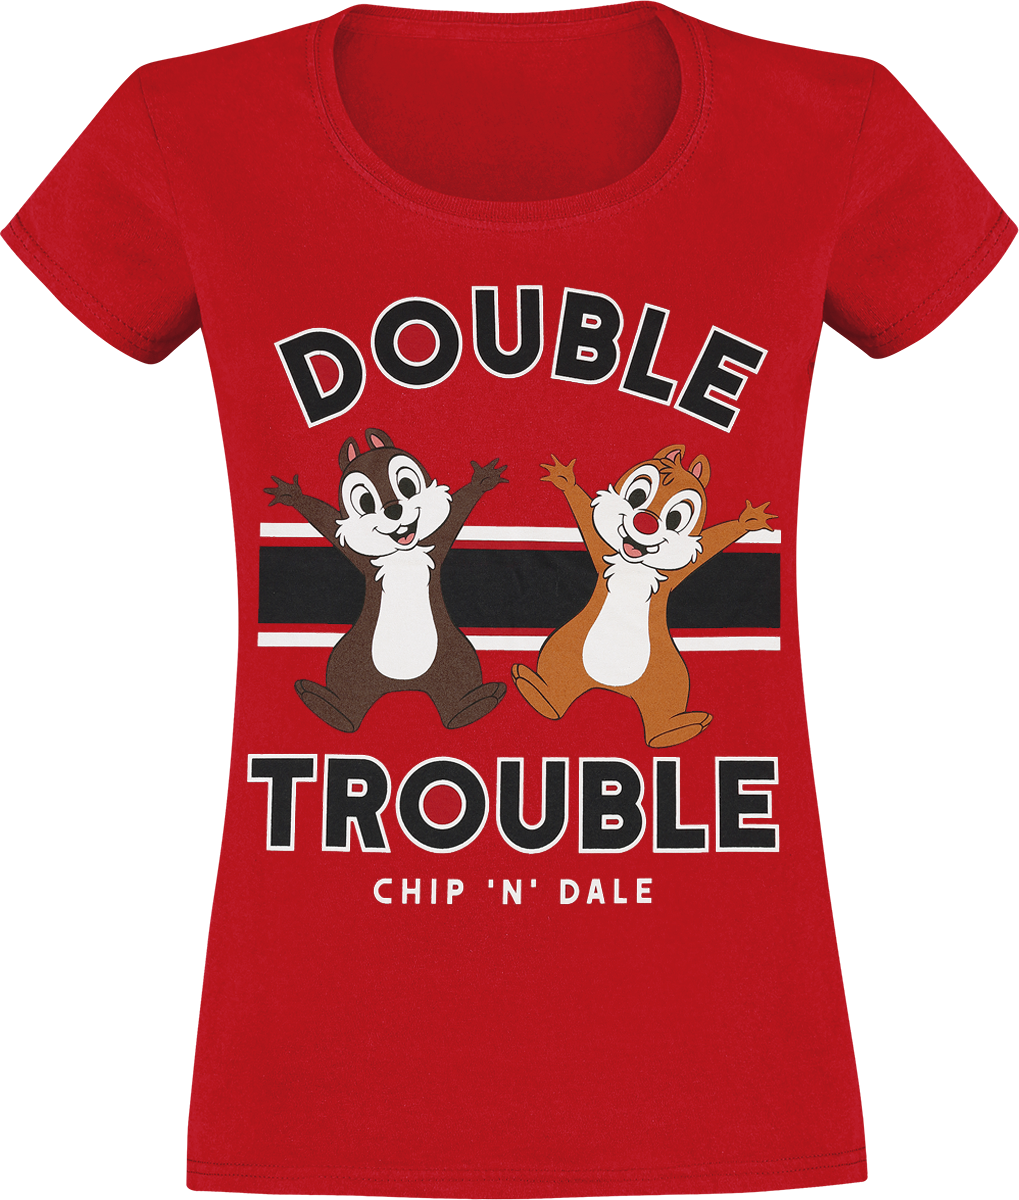 Chip & Chap - Double Trouble - Girls shirt - red image